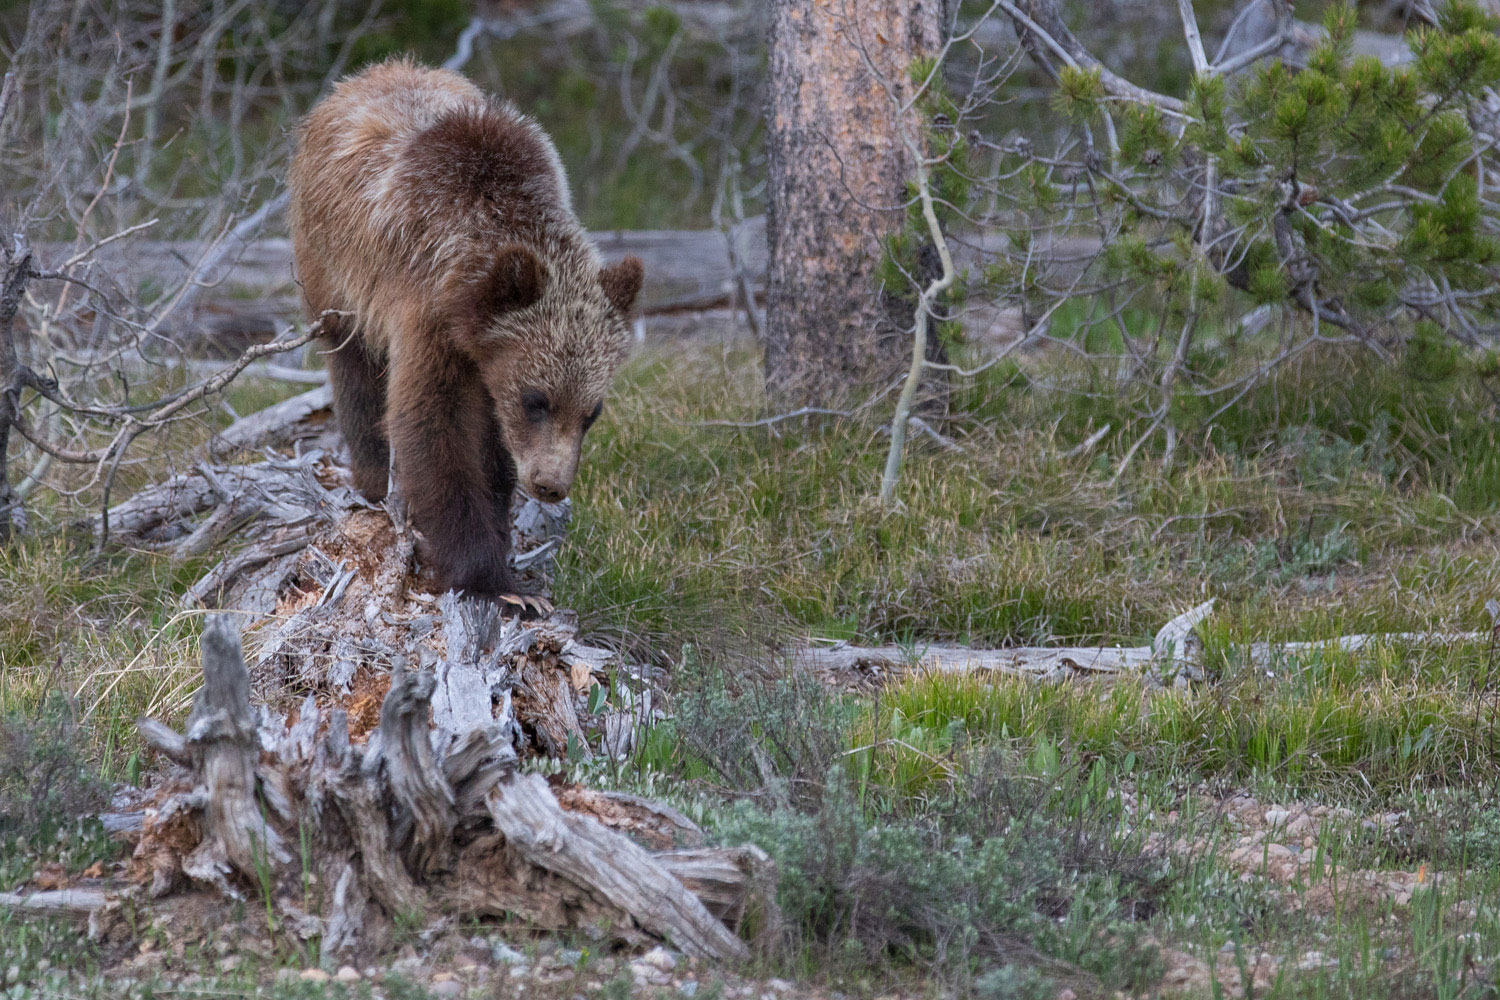 399, grizzly, bear, cub, grand teton, photo, image, 2018, Tetons, photo